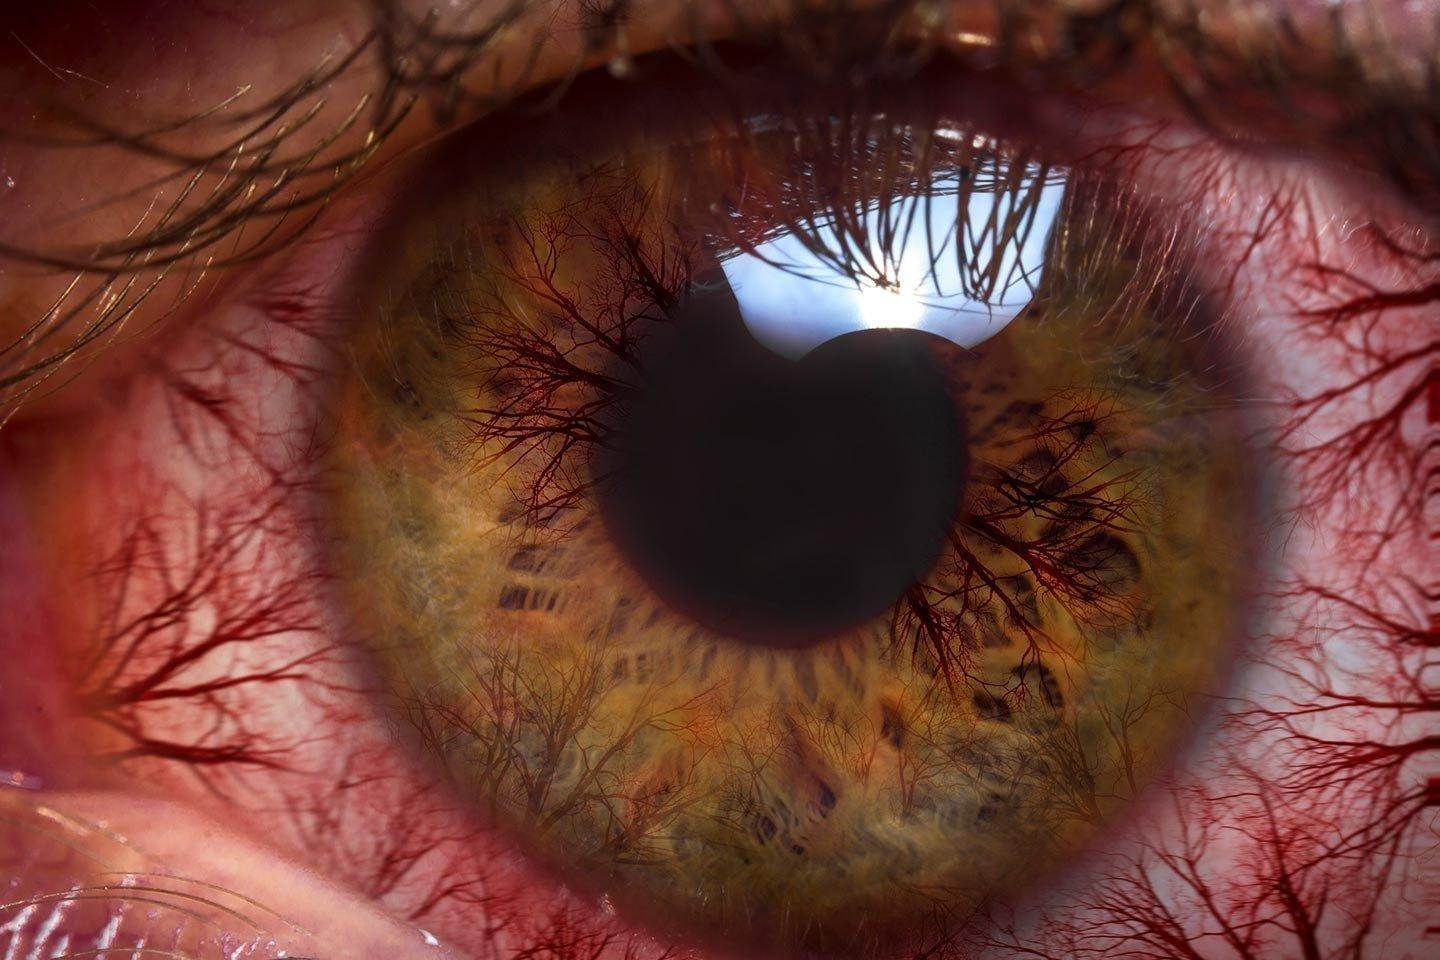 Glaucoma Steals Sight Without Warning